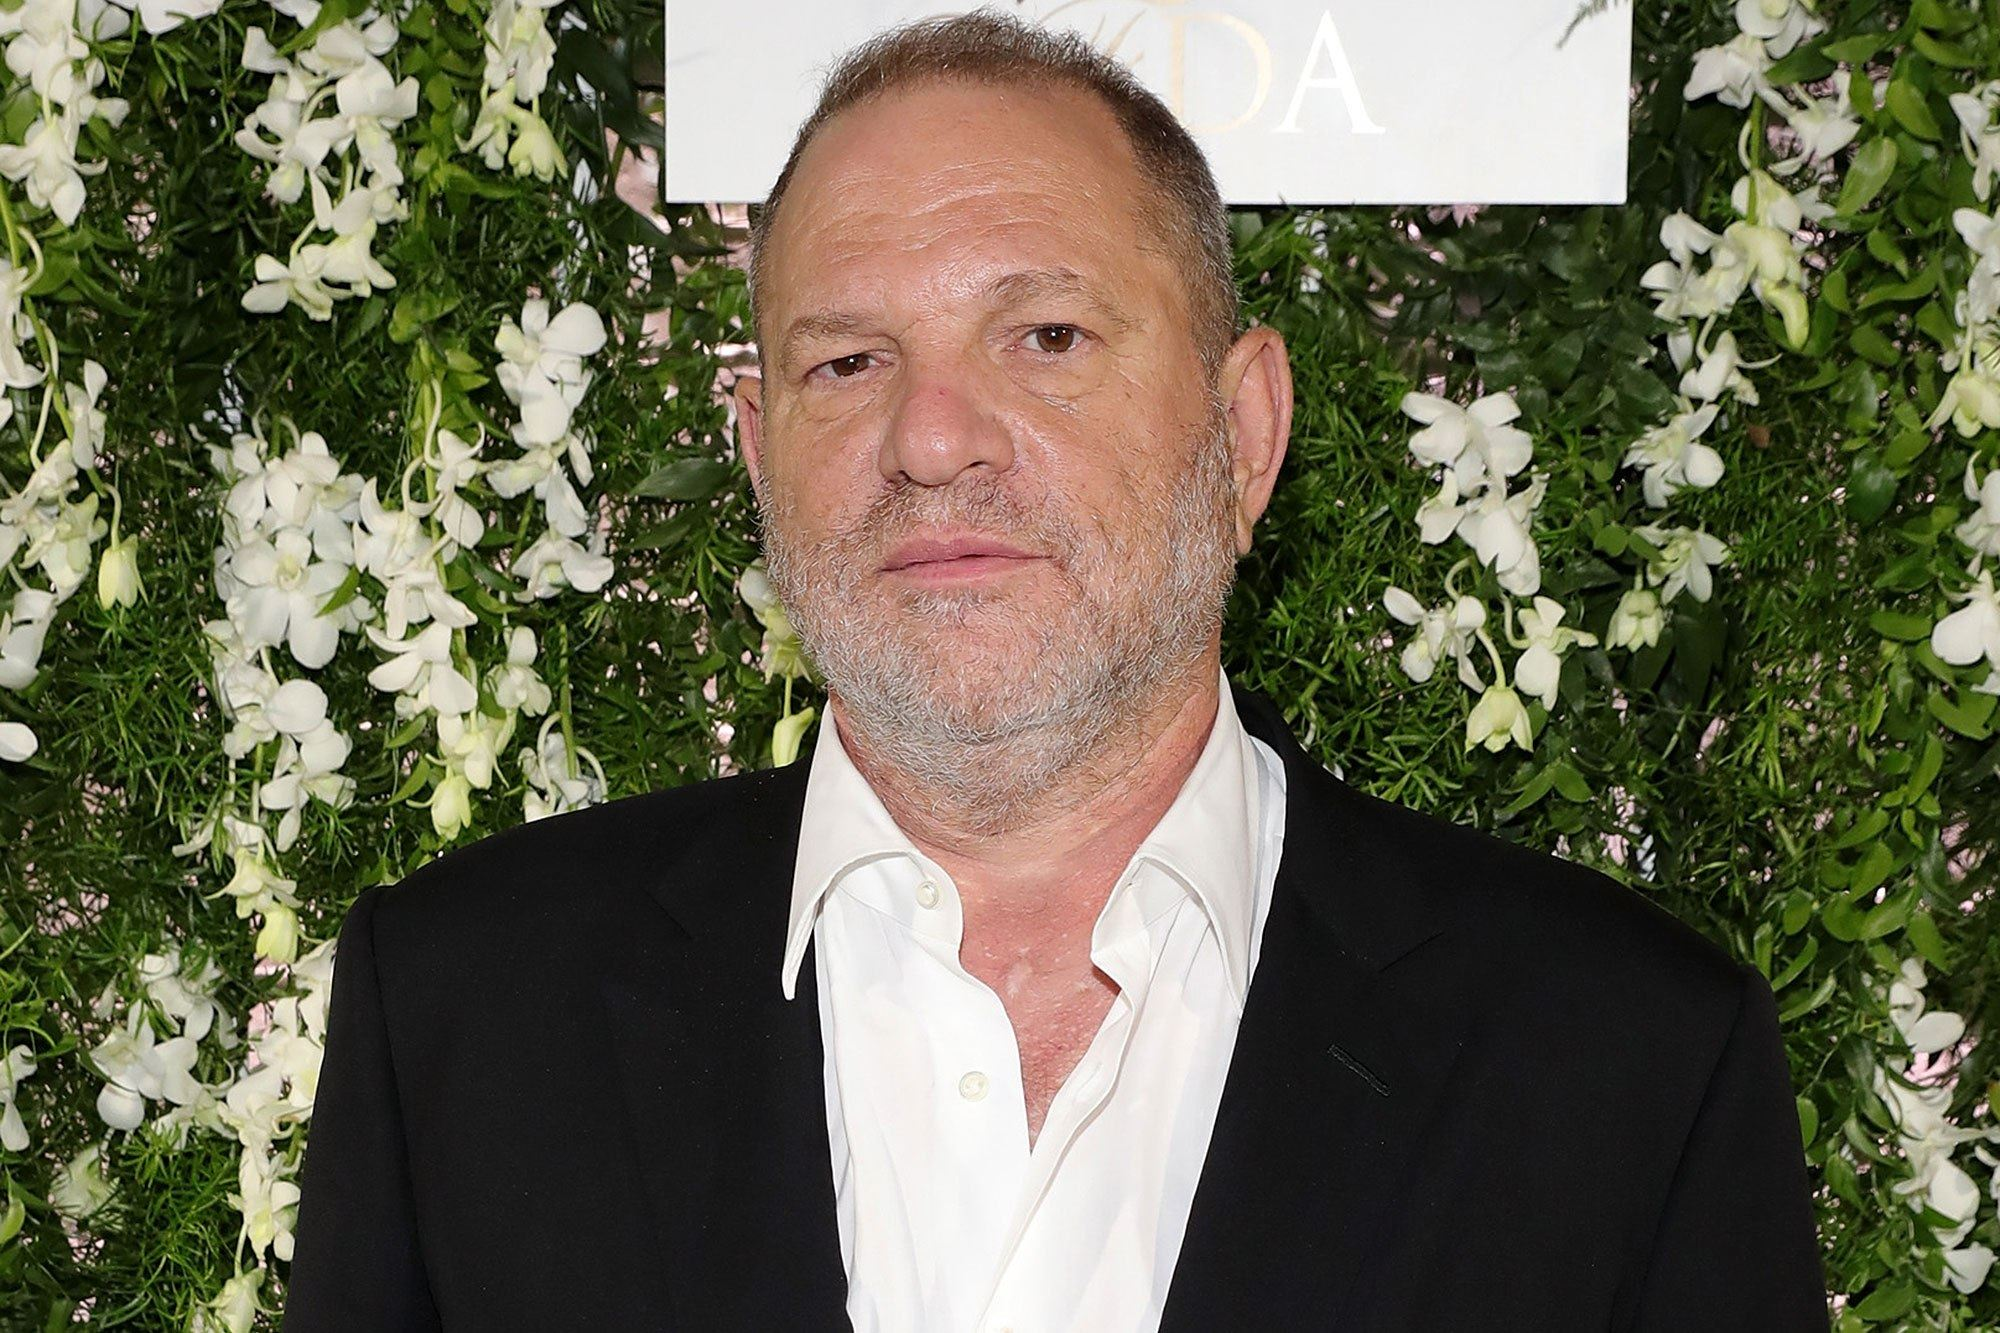 Agreden a Harvey Weinstein en un restaurante de Arizona